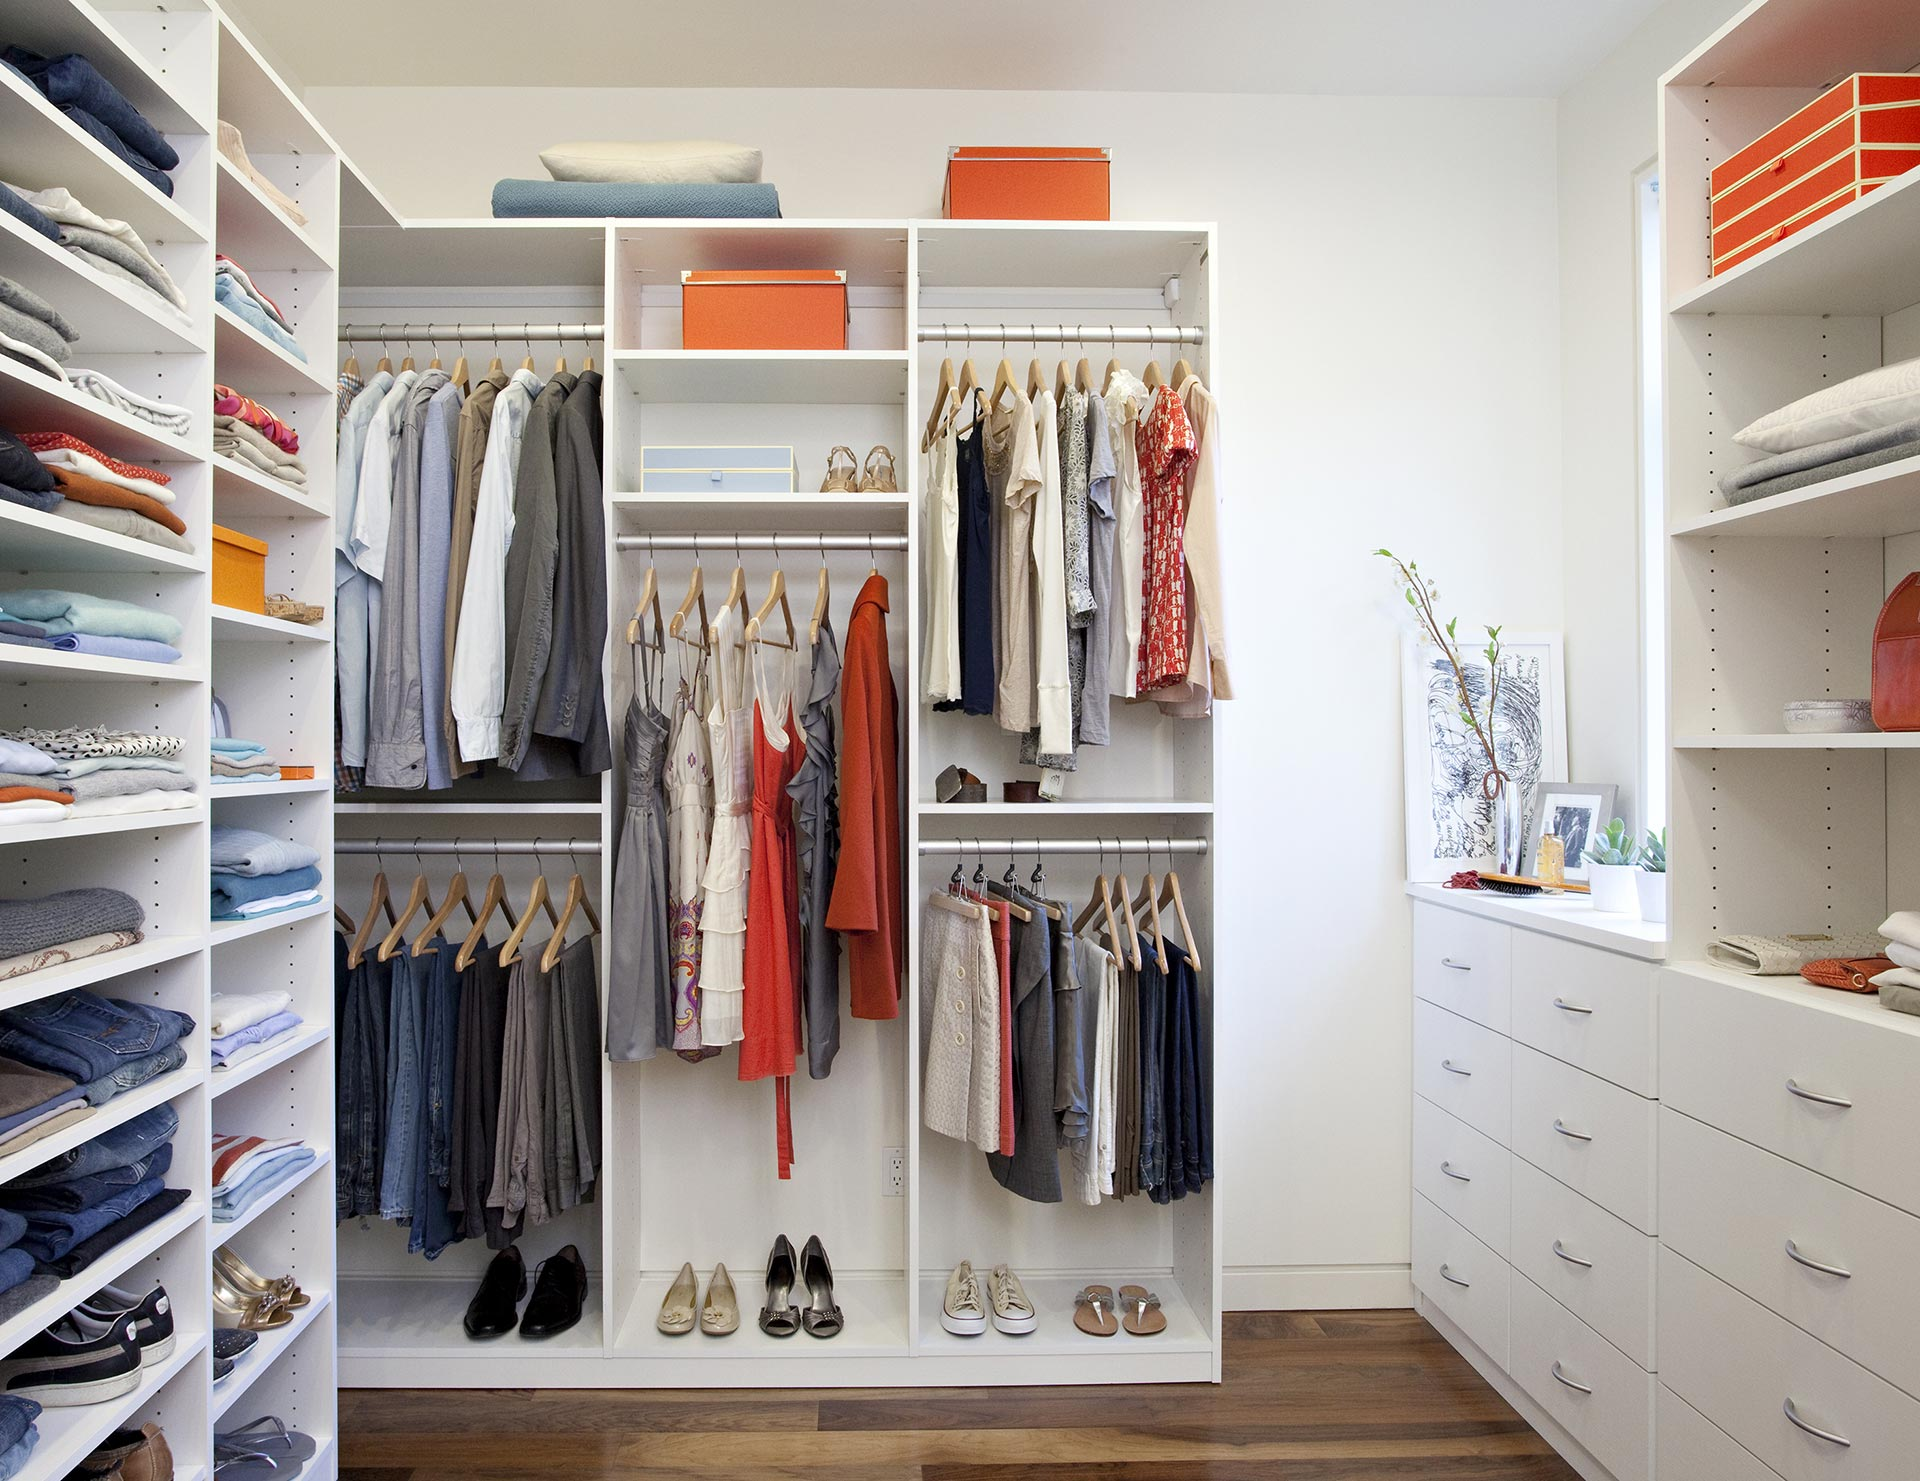 Walk in closet Shoe White Themed Walk In Closet With Drawers Shelving And Closet Rods California Closets Walk In Closets Designs Ideas By California Closets